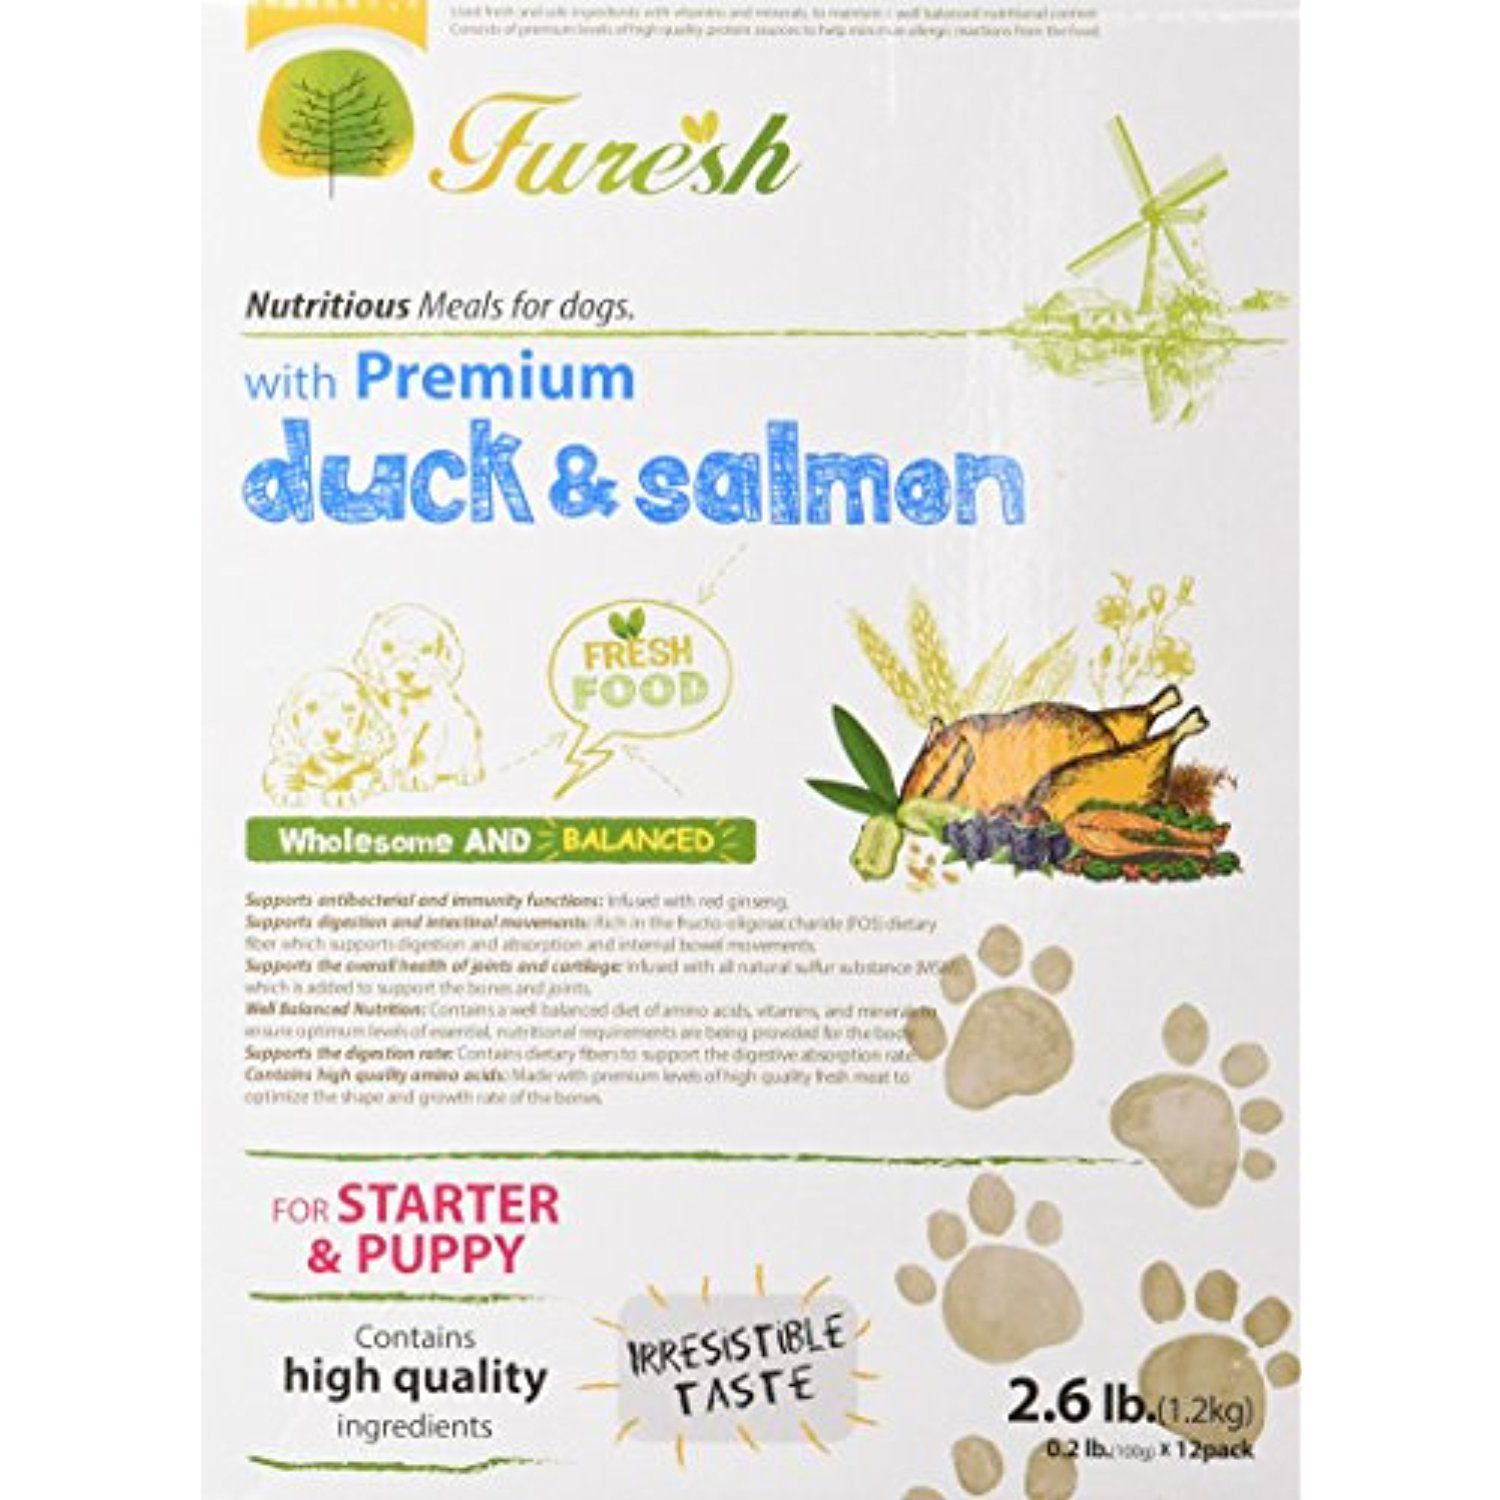 Furesh Dry Dog Food You Can See This Great Product This Is An